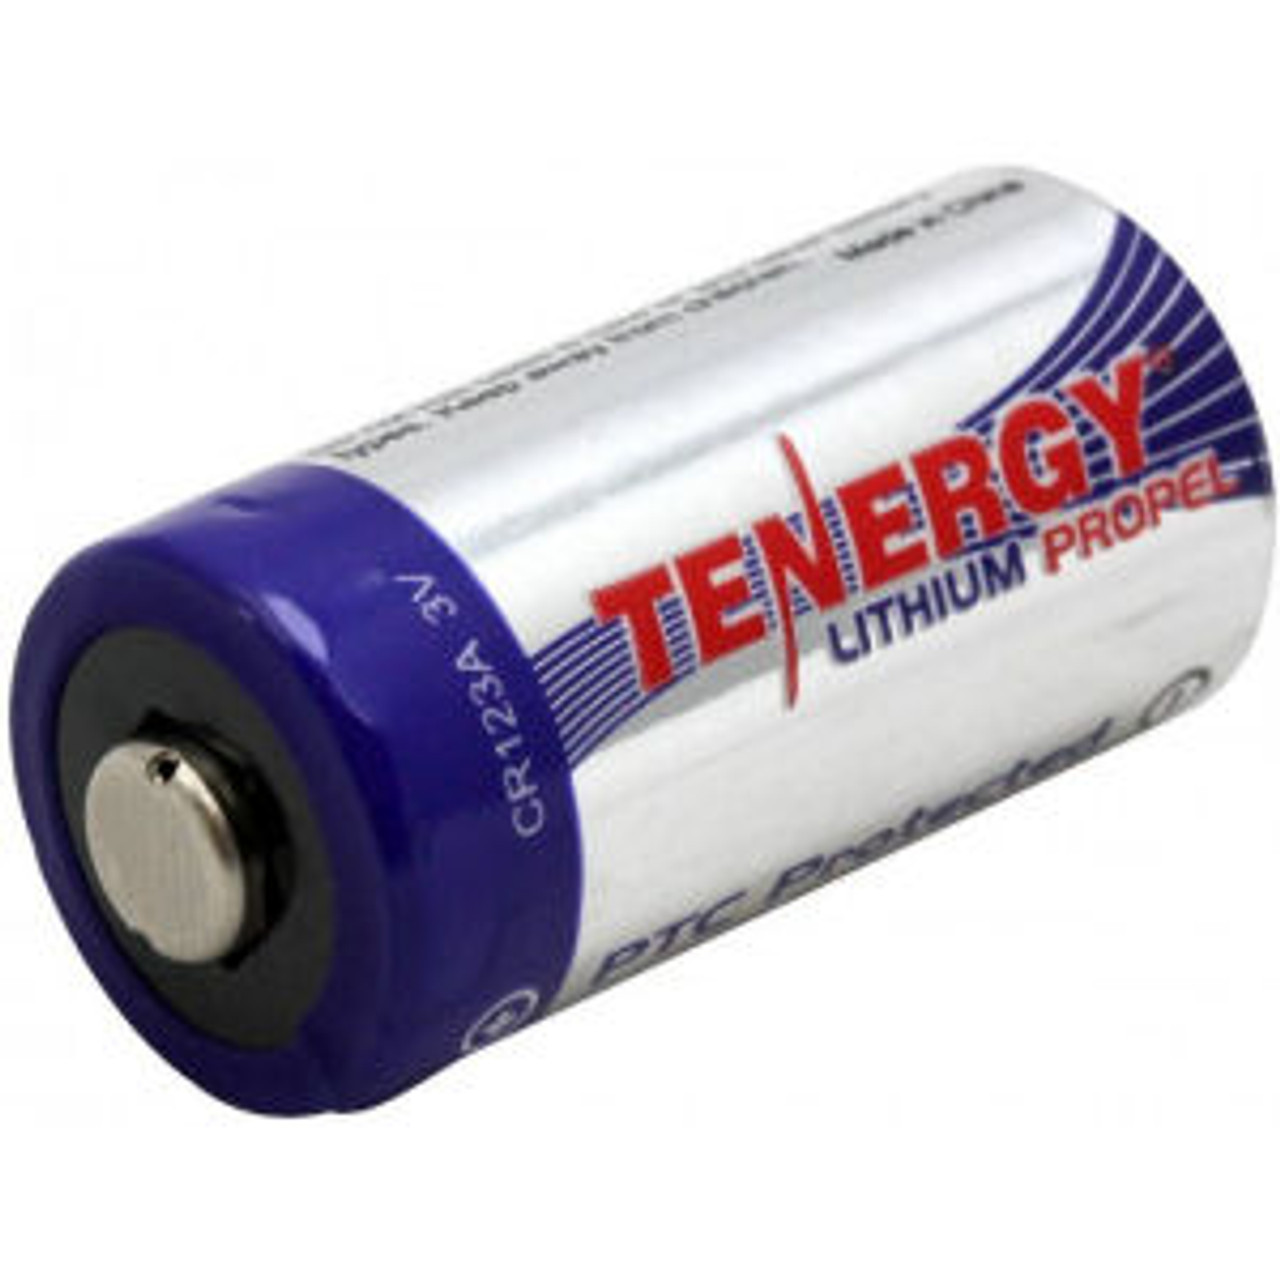 Tenergy CR123A Lithium Primary Cell - Each